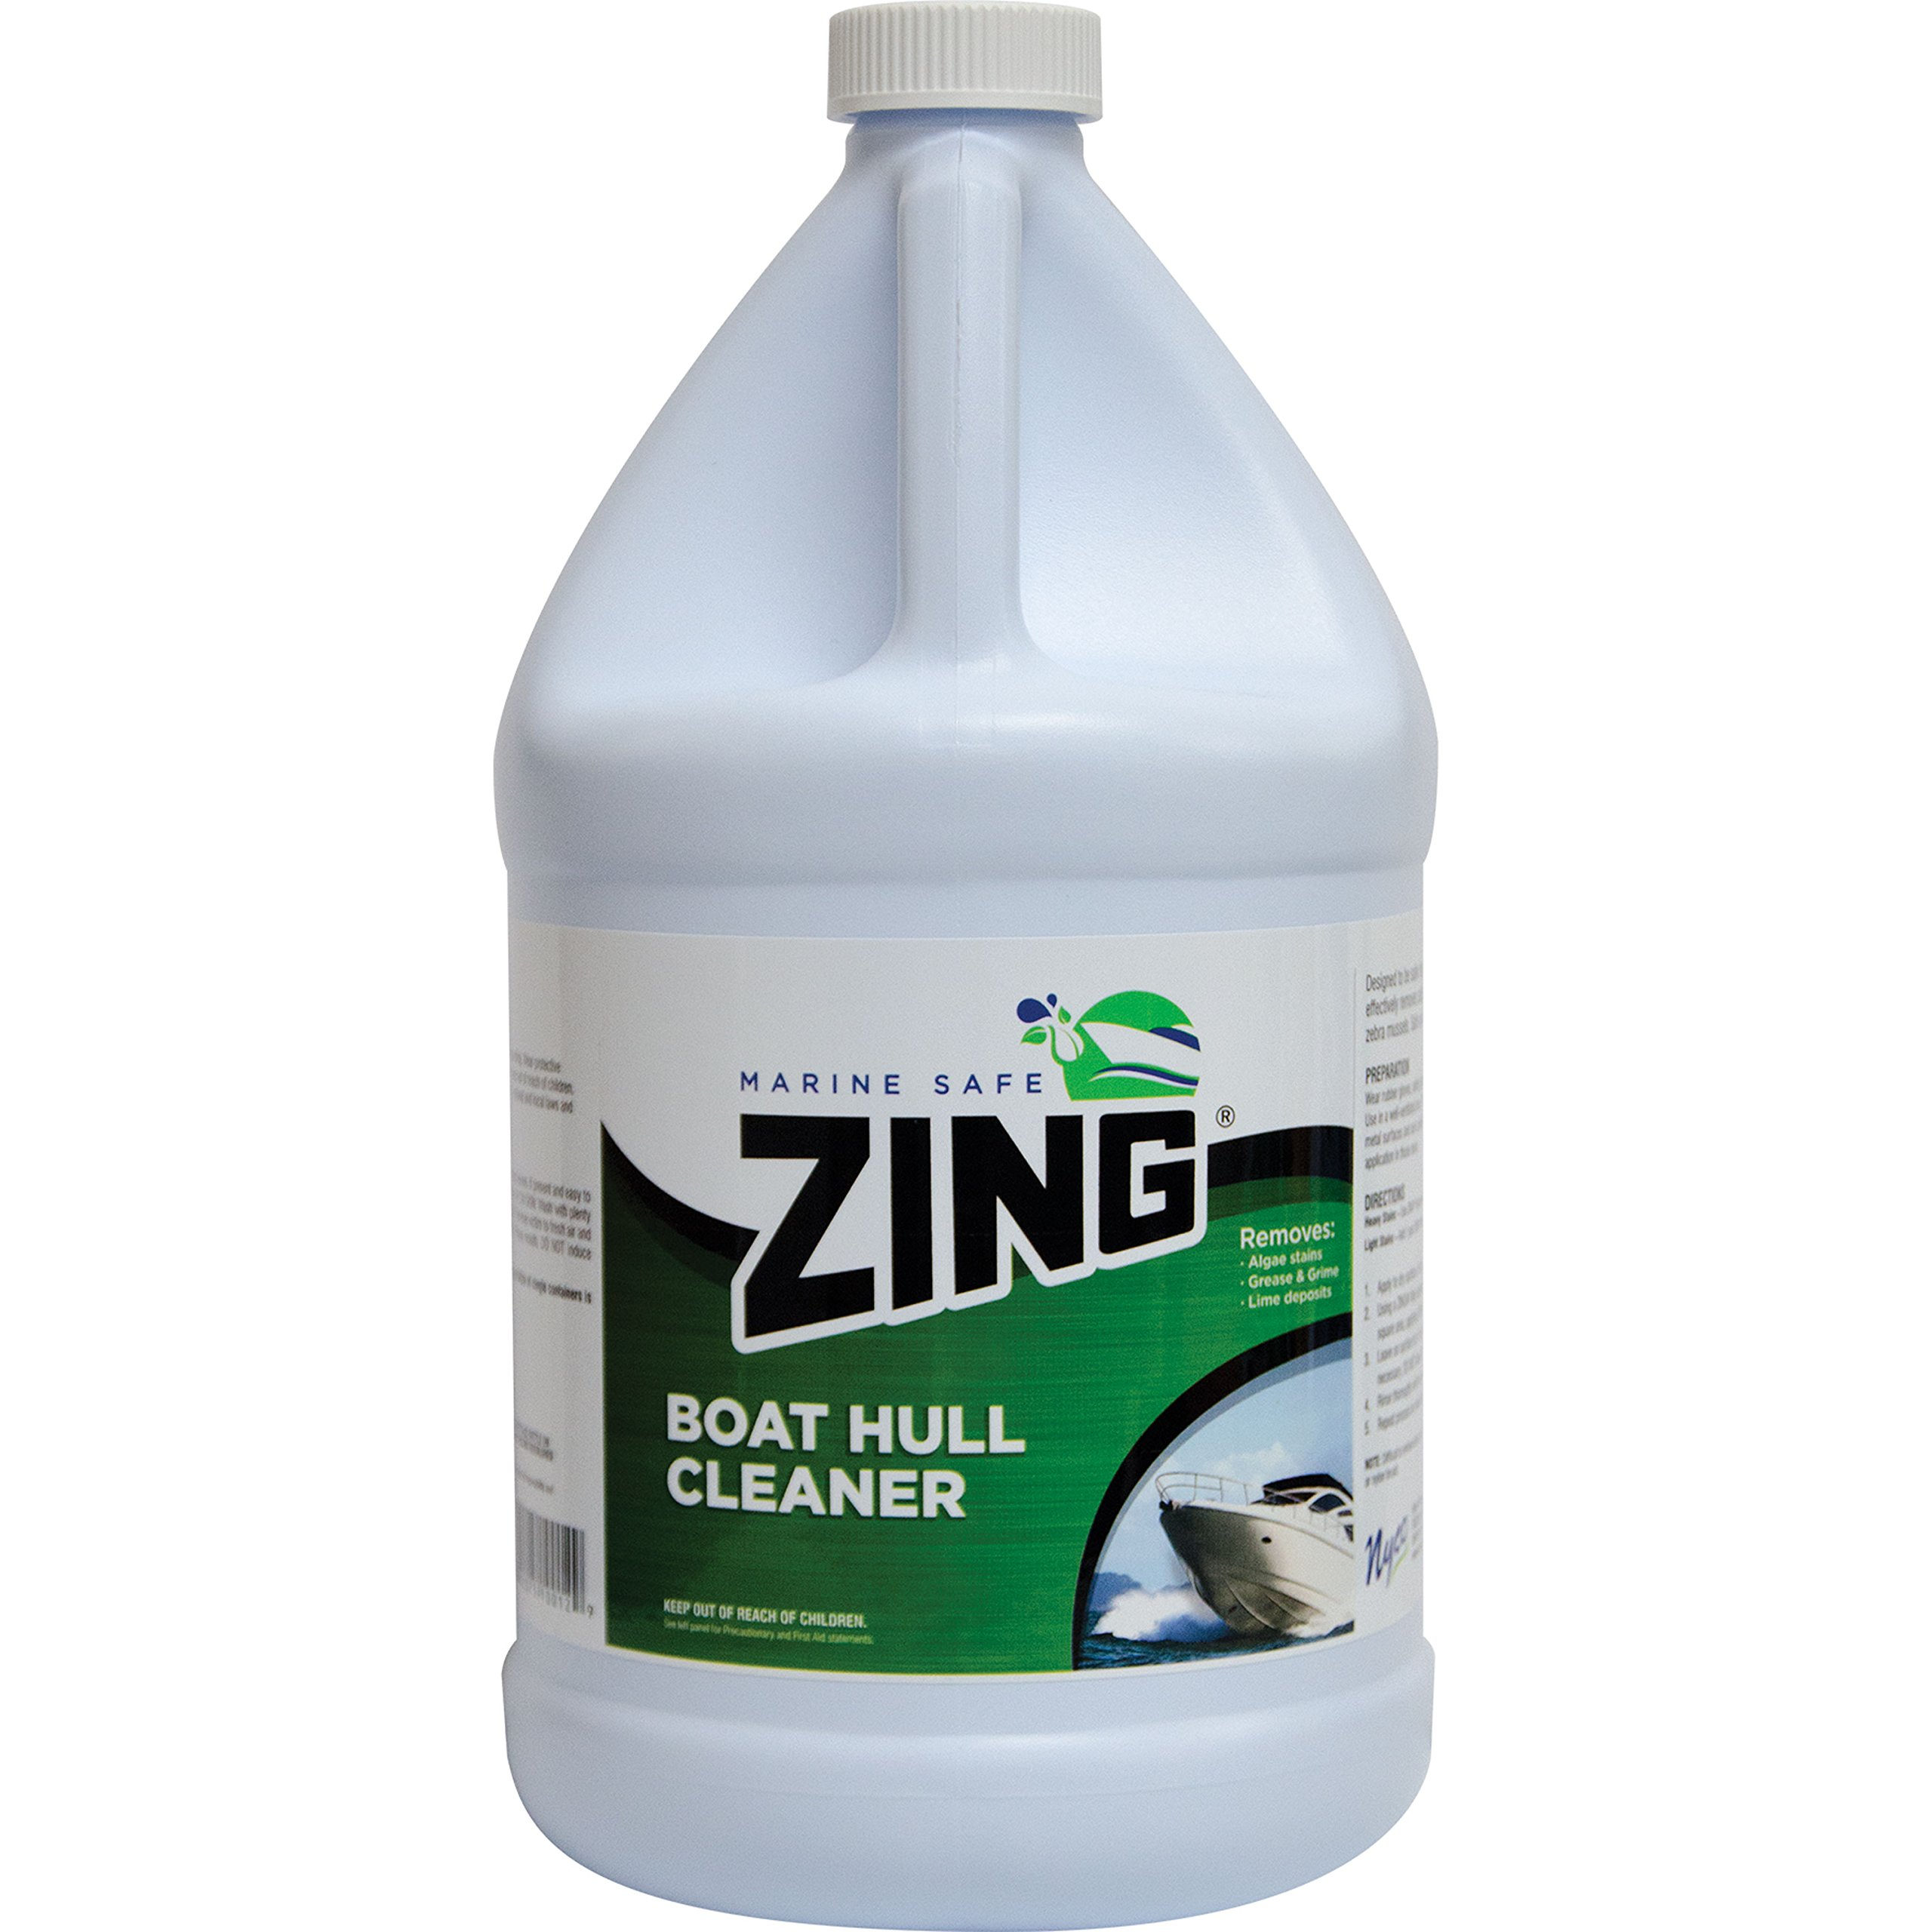 ZING 10118 Marine Safe Boat Hull Cleaner - 1 Gallon by Zing